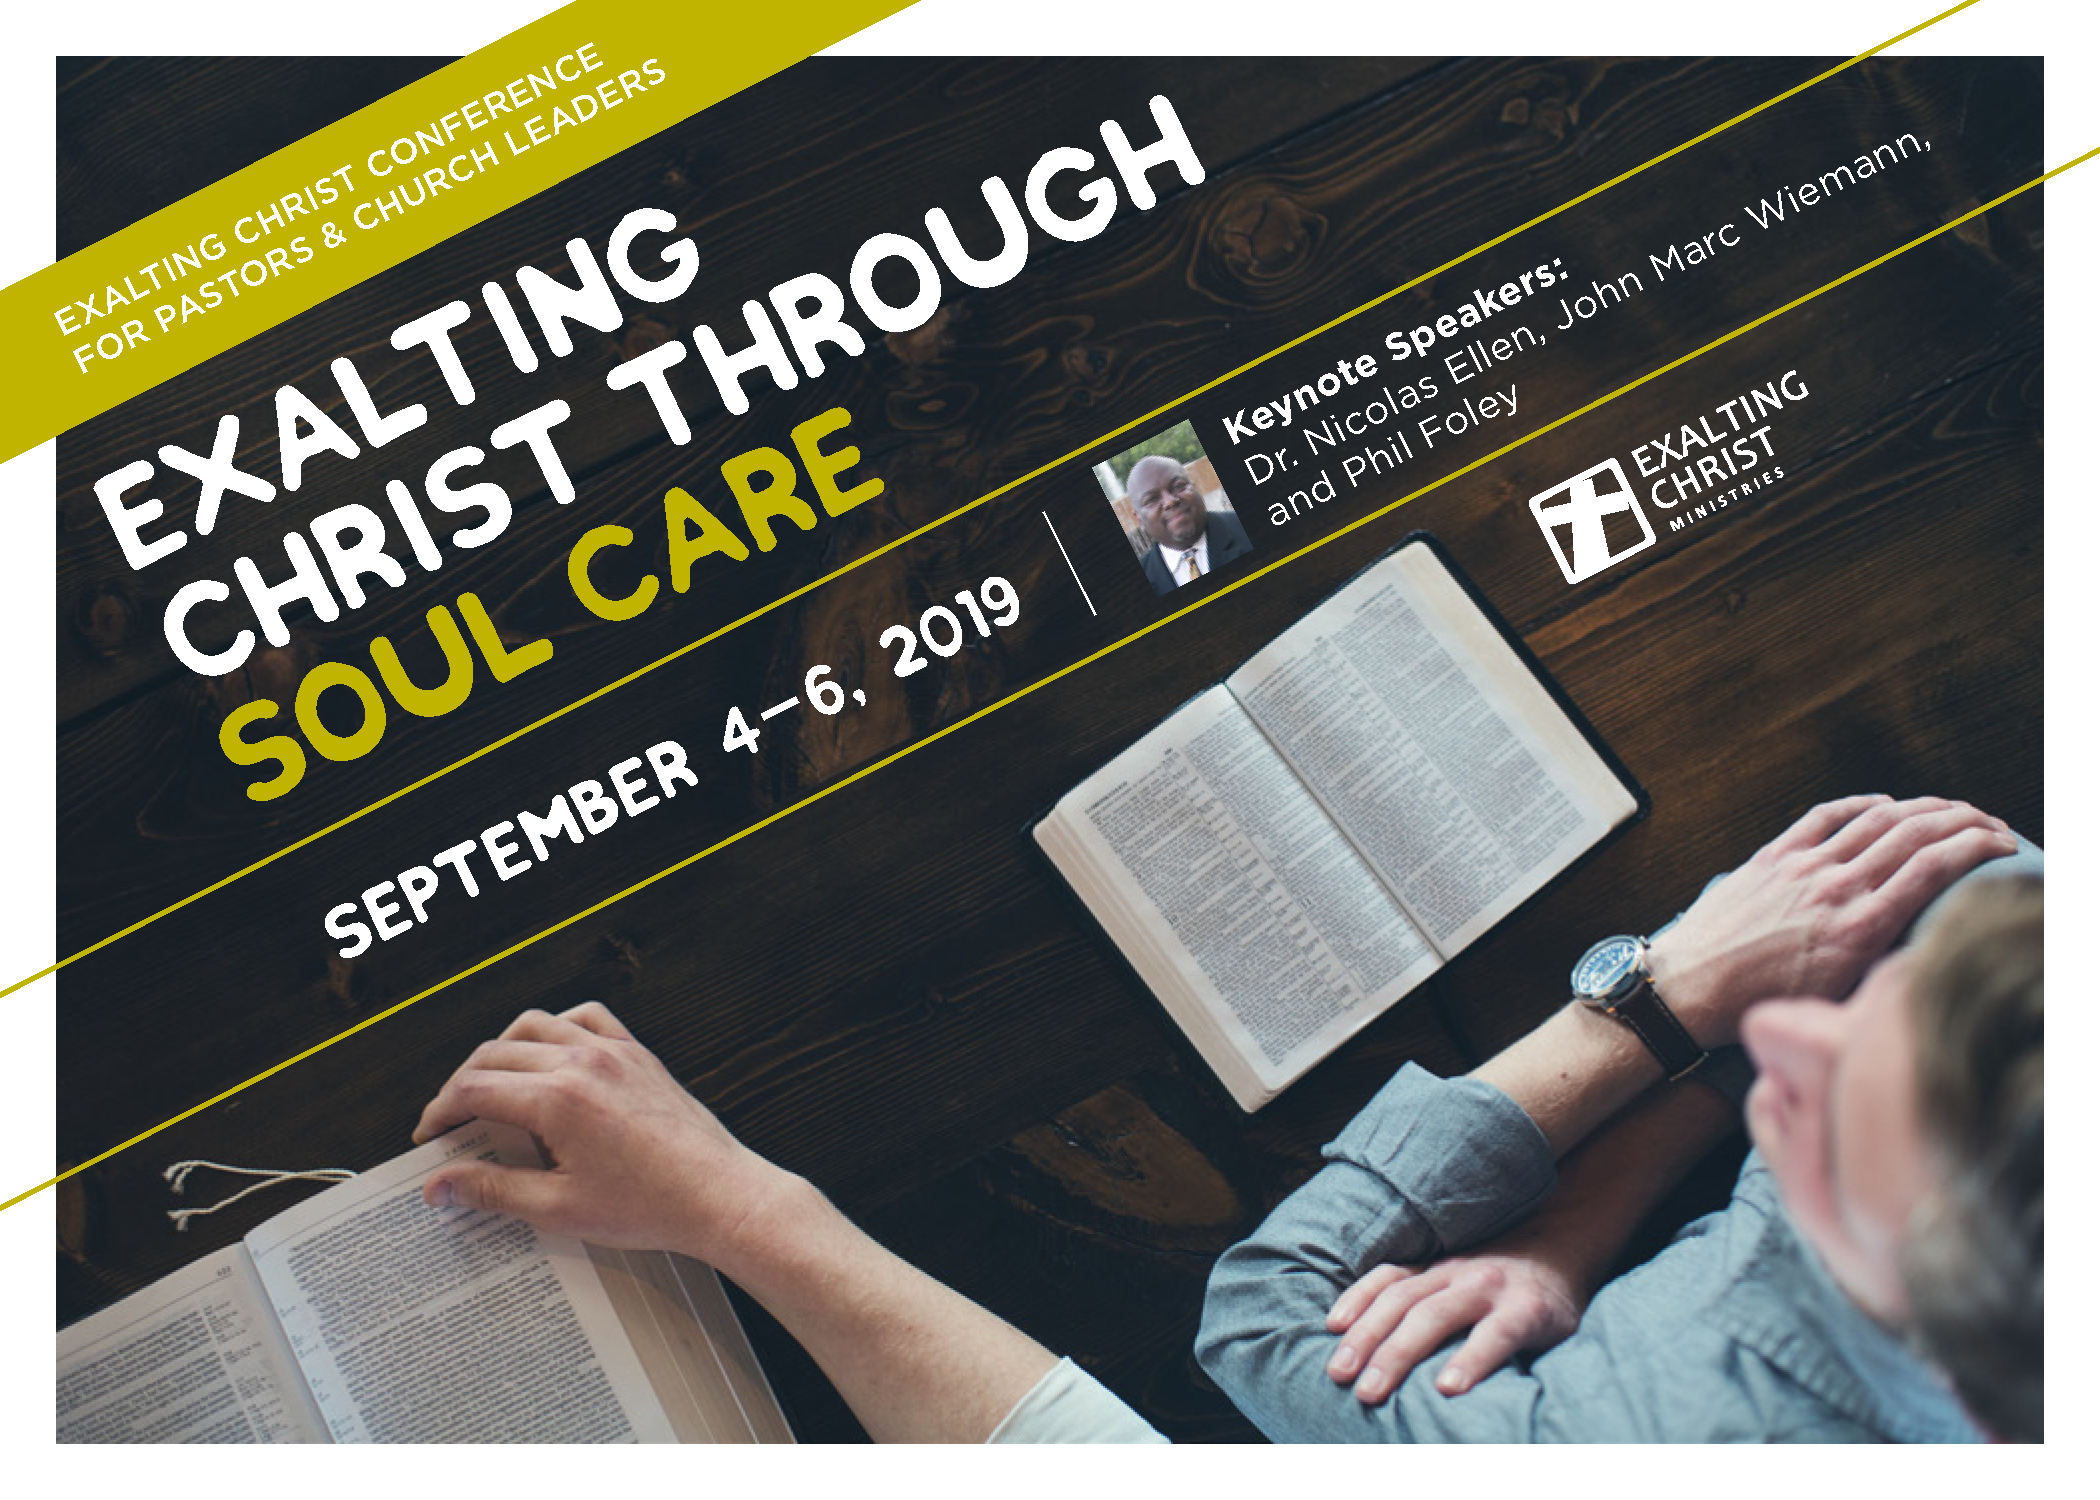 2019 Exalting Christ Conference for Pastors & Church Leaders